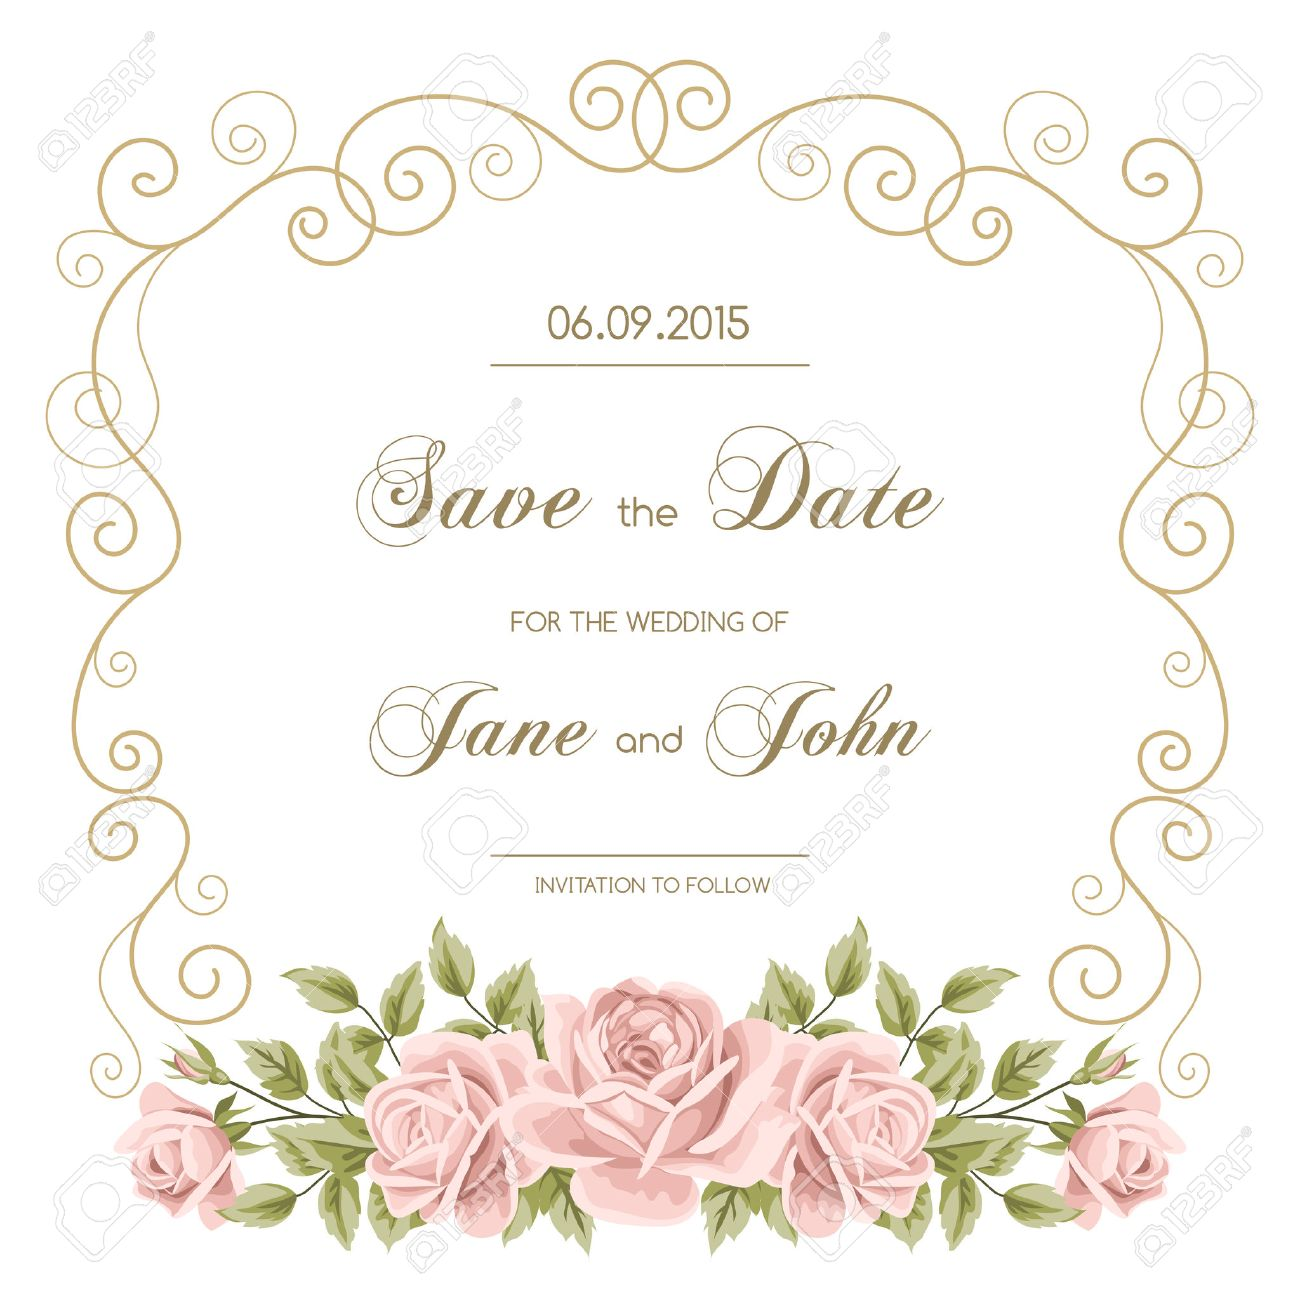 vector vintage wedding invitation with roses invitation template with gold curling frame save the date design vector illustration